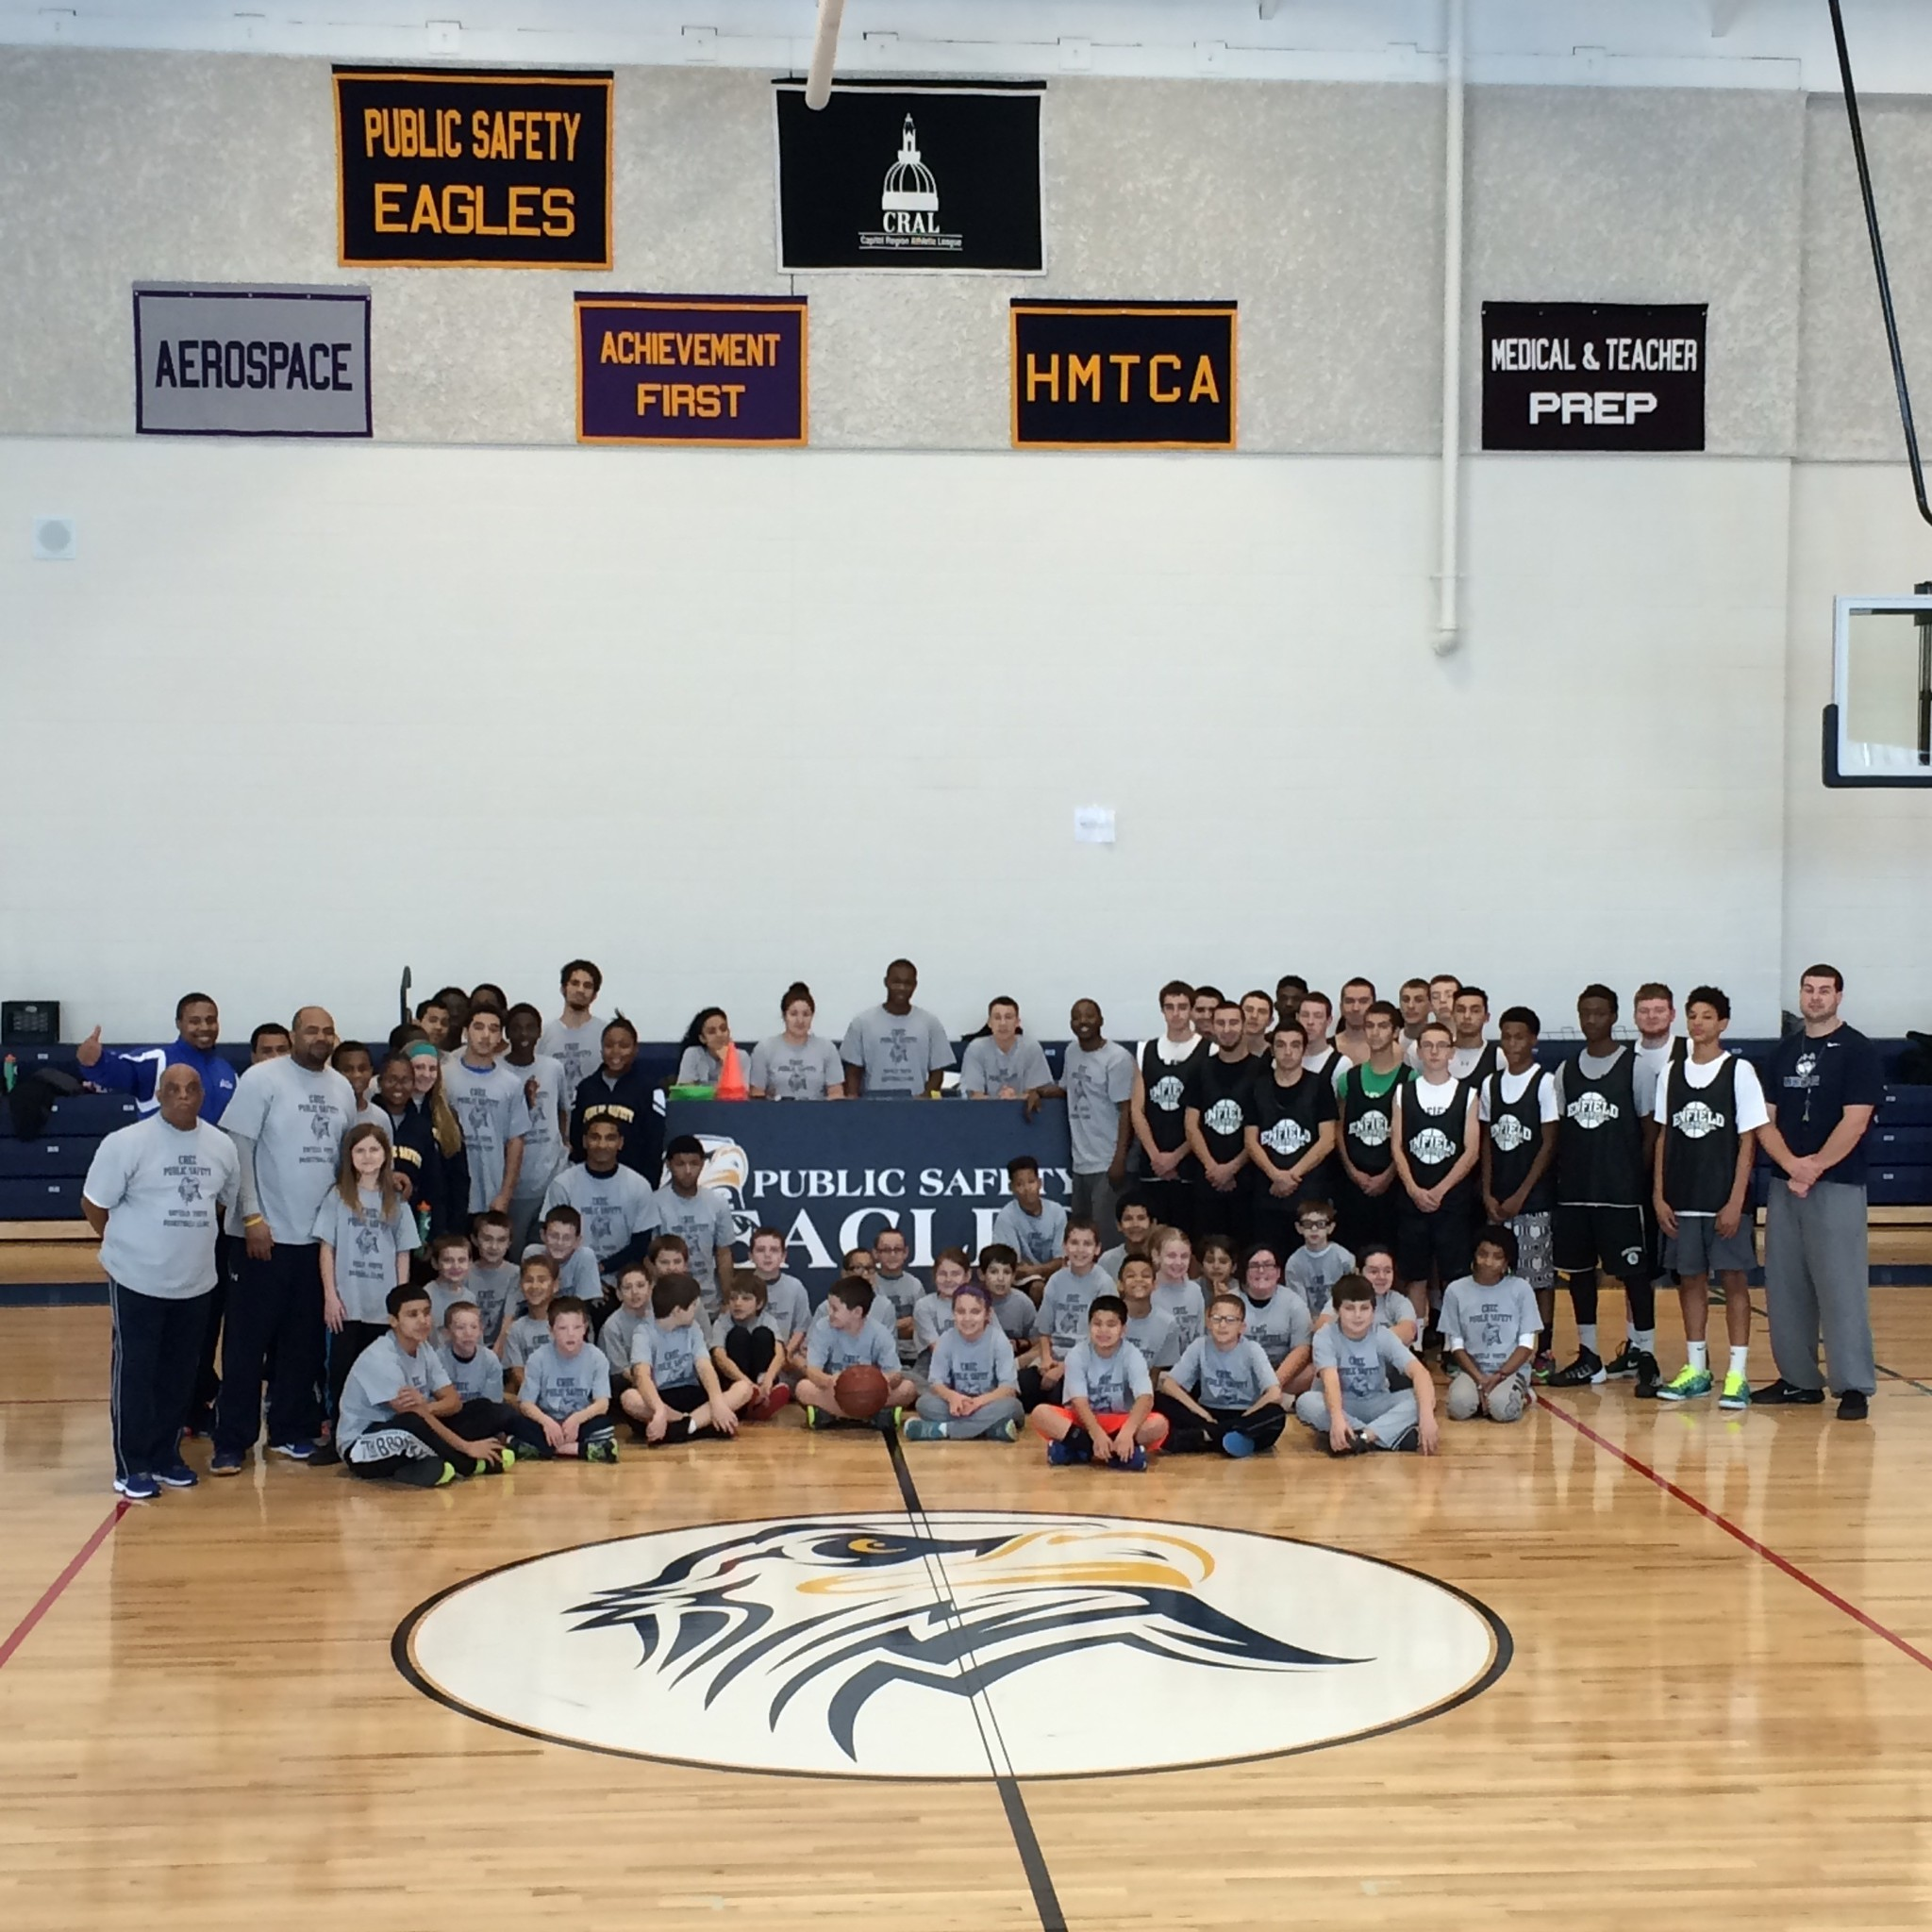 Community Safety Volunteer Academy: CREC Public Safety Academy Holds Basketball Clinic For